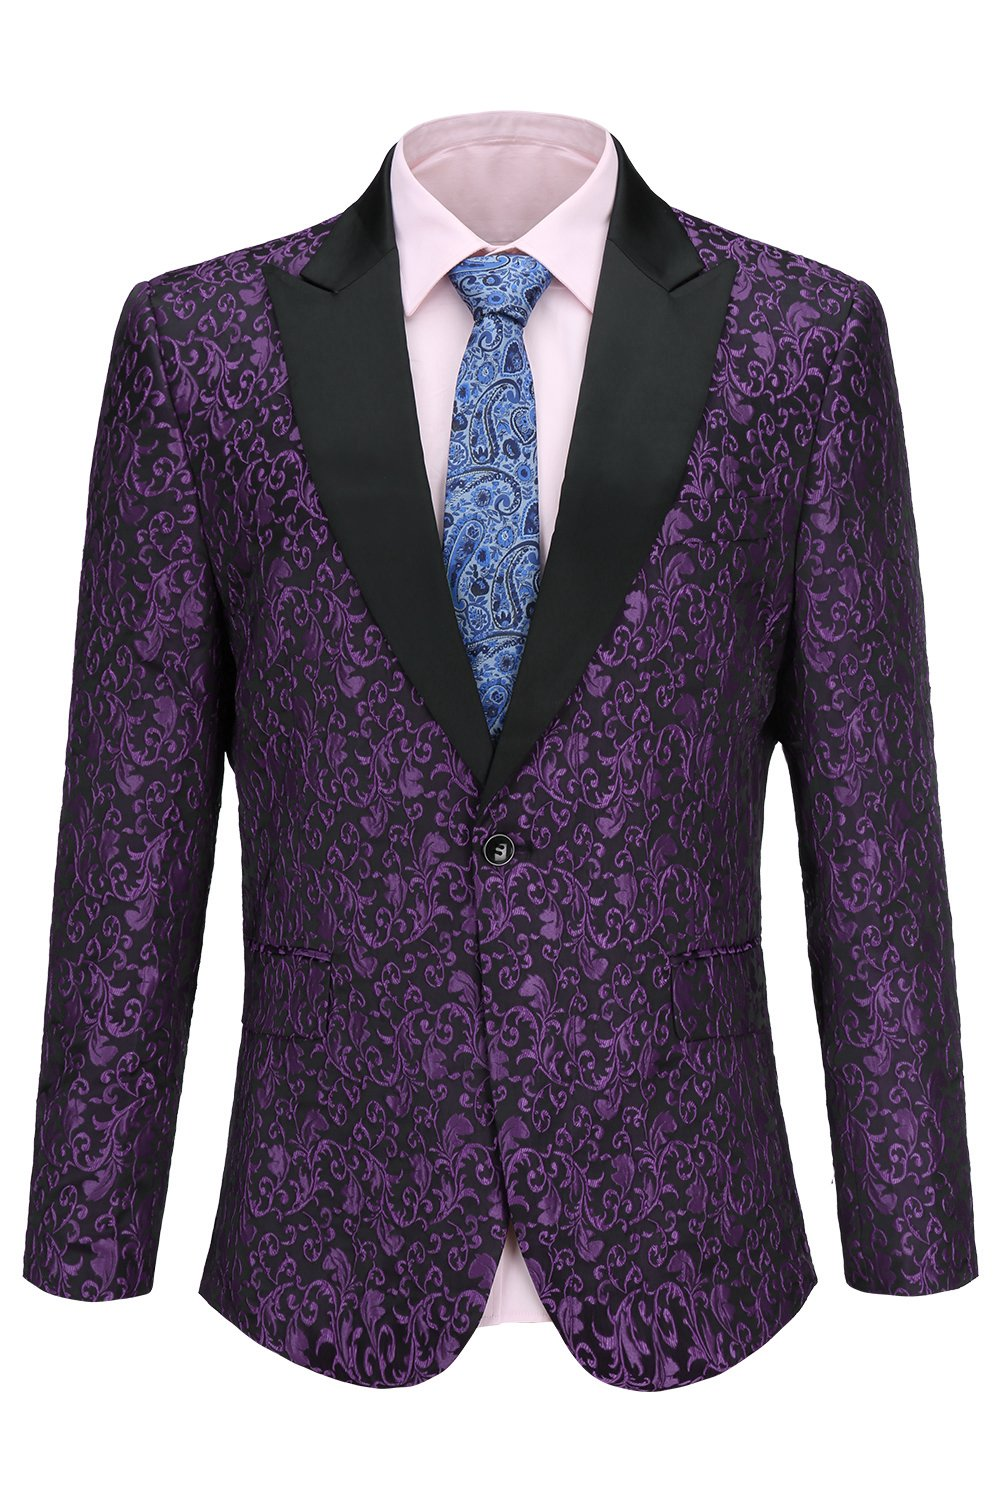 4509e9167f7 FISOUL Mens Suit Floral Party Dress Suit Stylish Dinner Tuxedo Jacket  Wedding Blazer product image